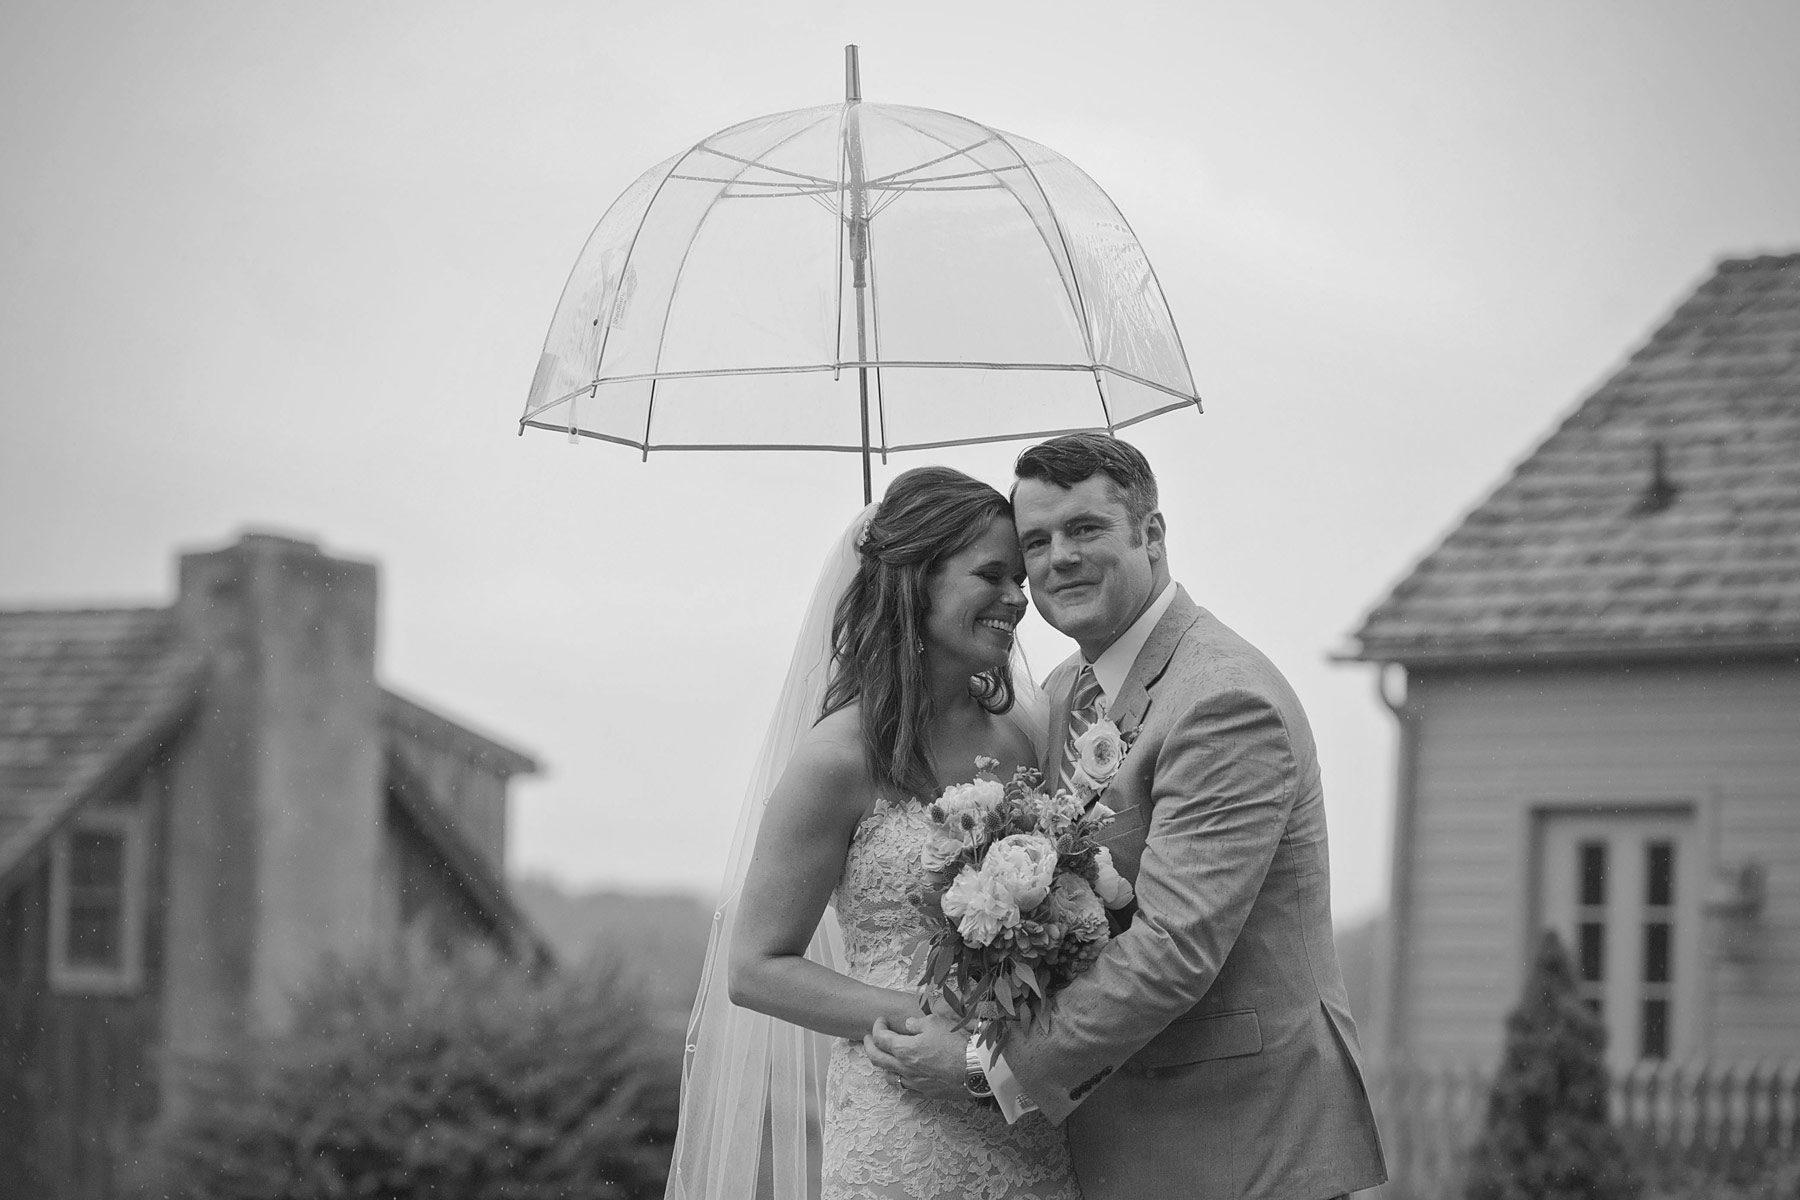 Bride and groom embrace under clear umbrella